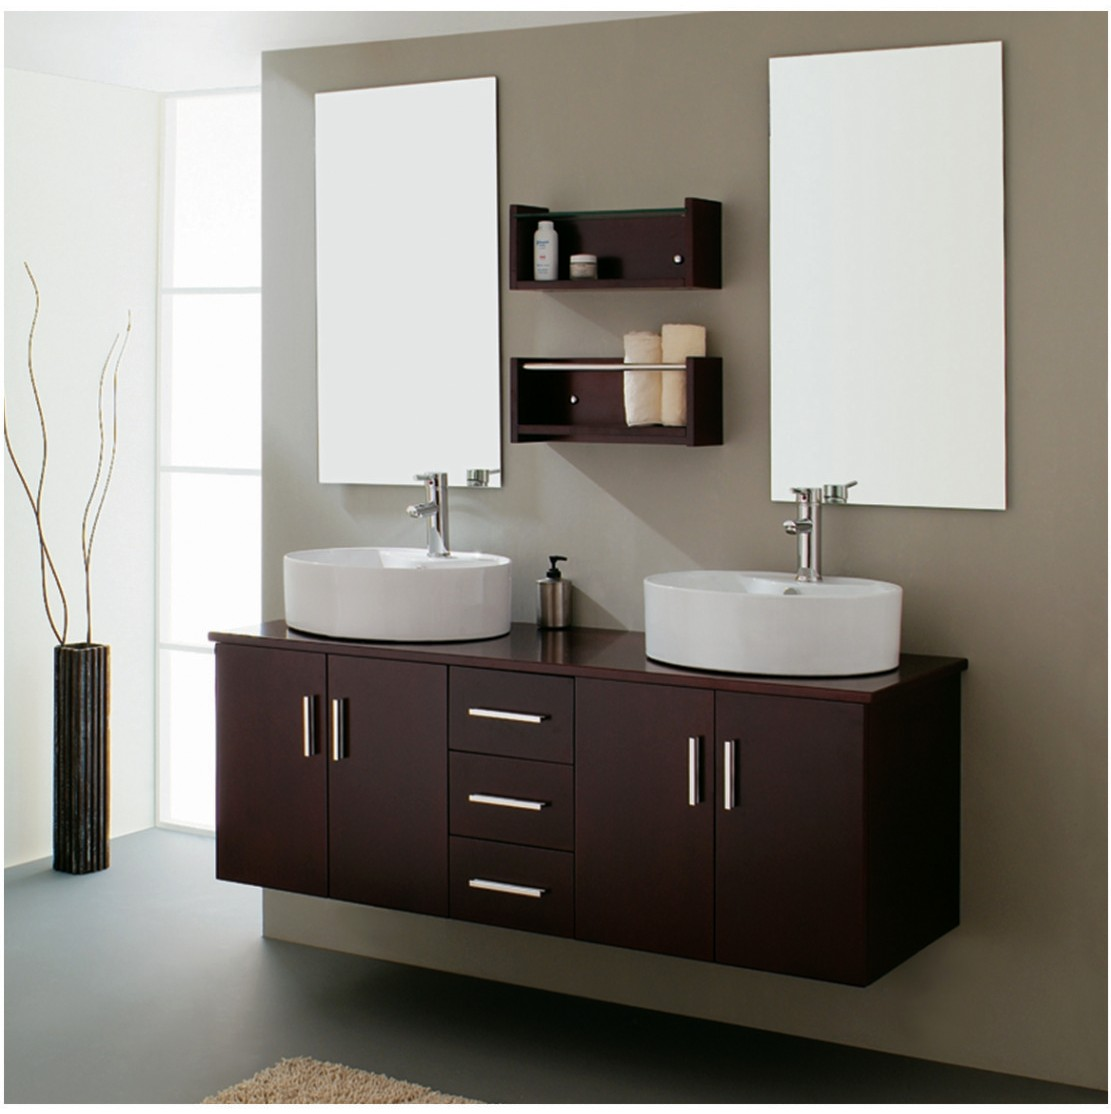 Modern bathroom vanity milano iii for Bathroom vanities